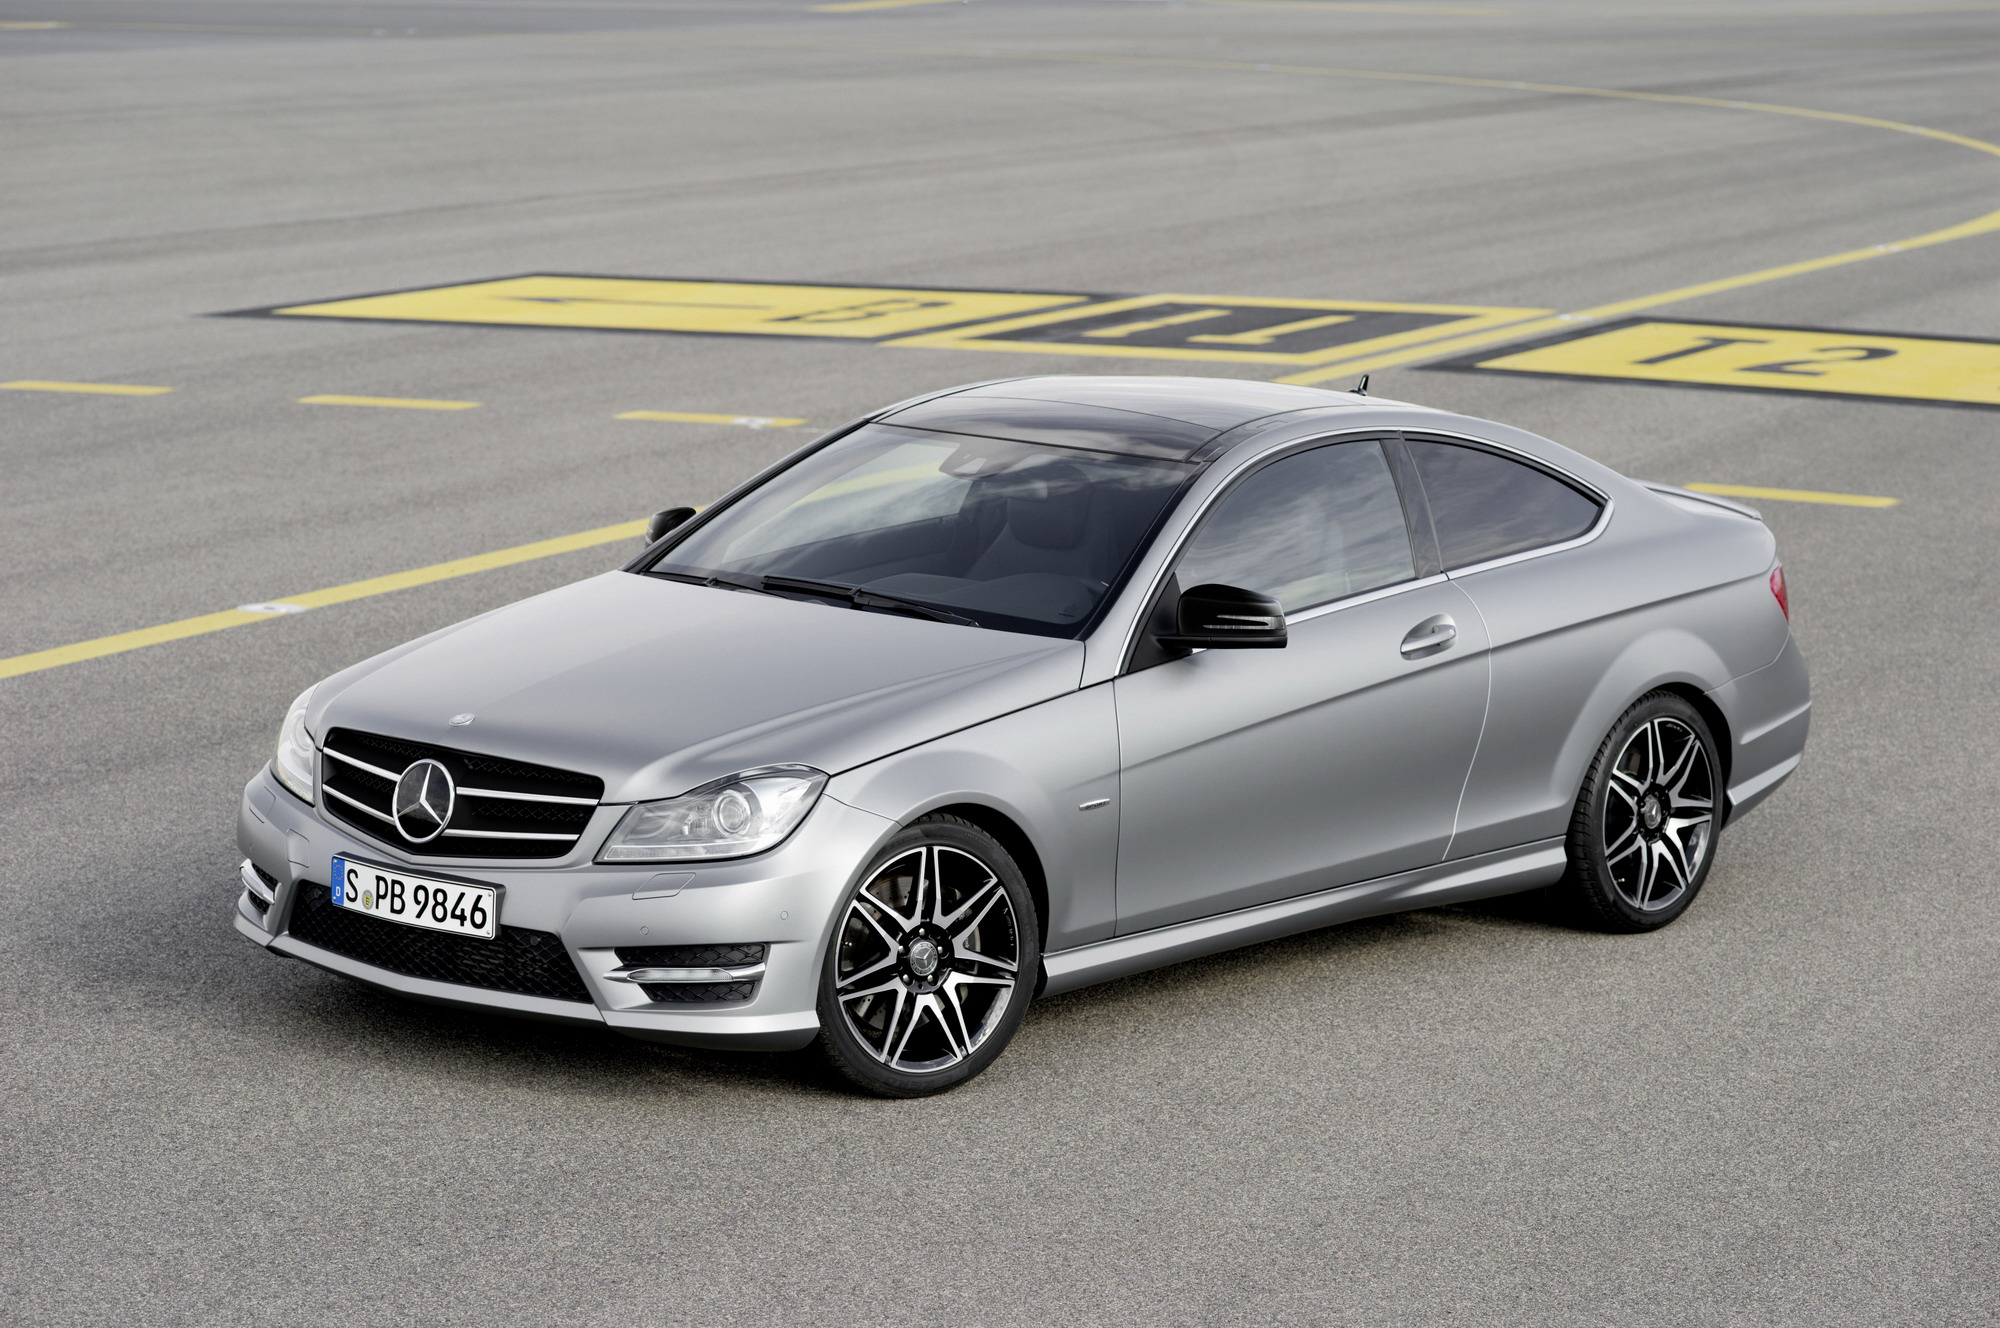 amg edition for wiltshire c mercedes premium benz car cdi in class used sport melksham auto sale